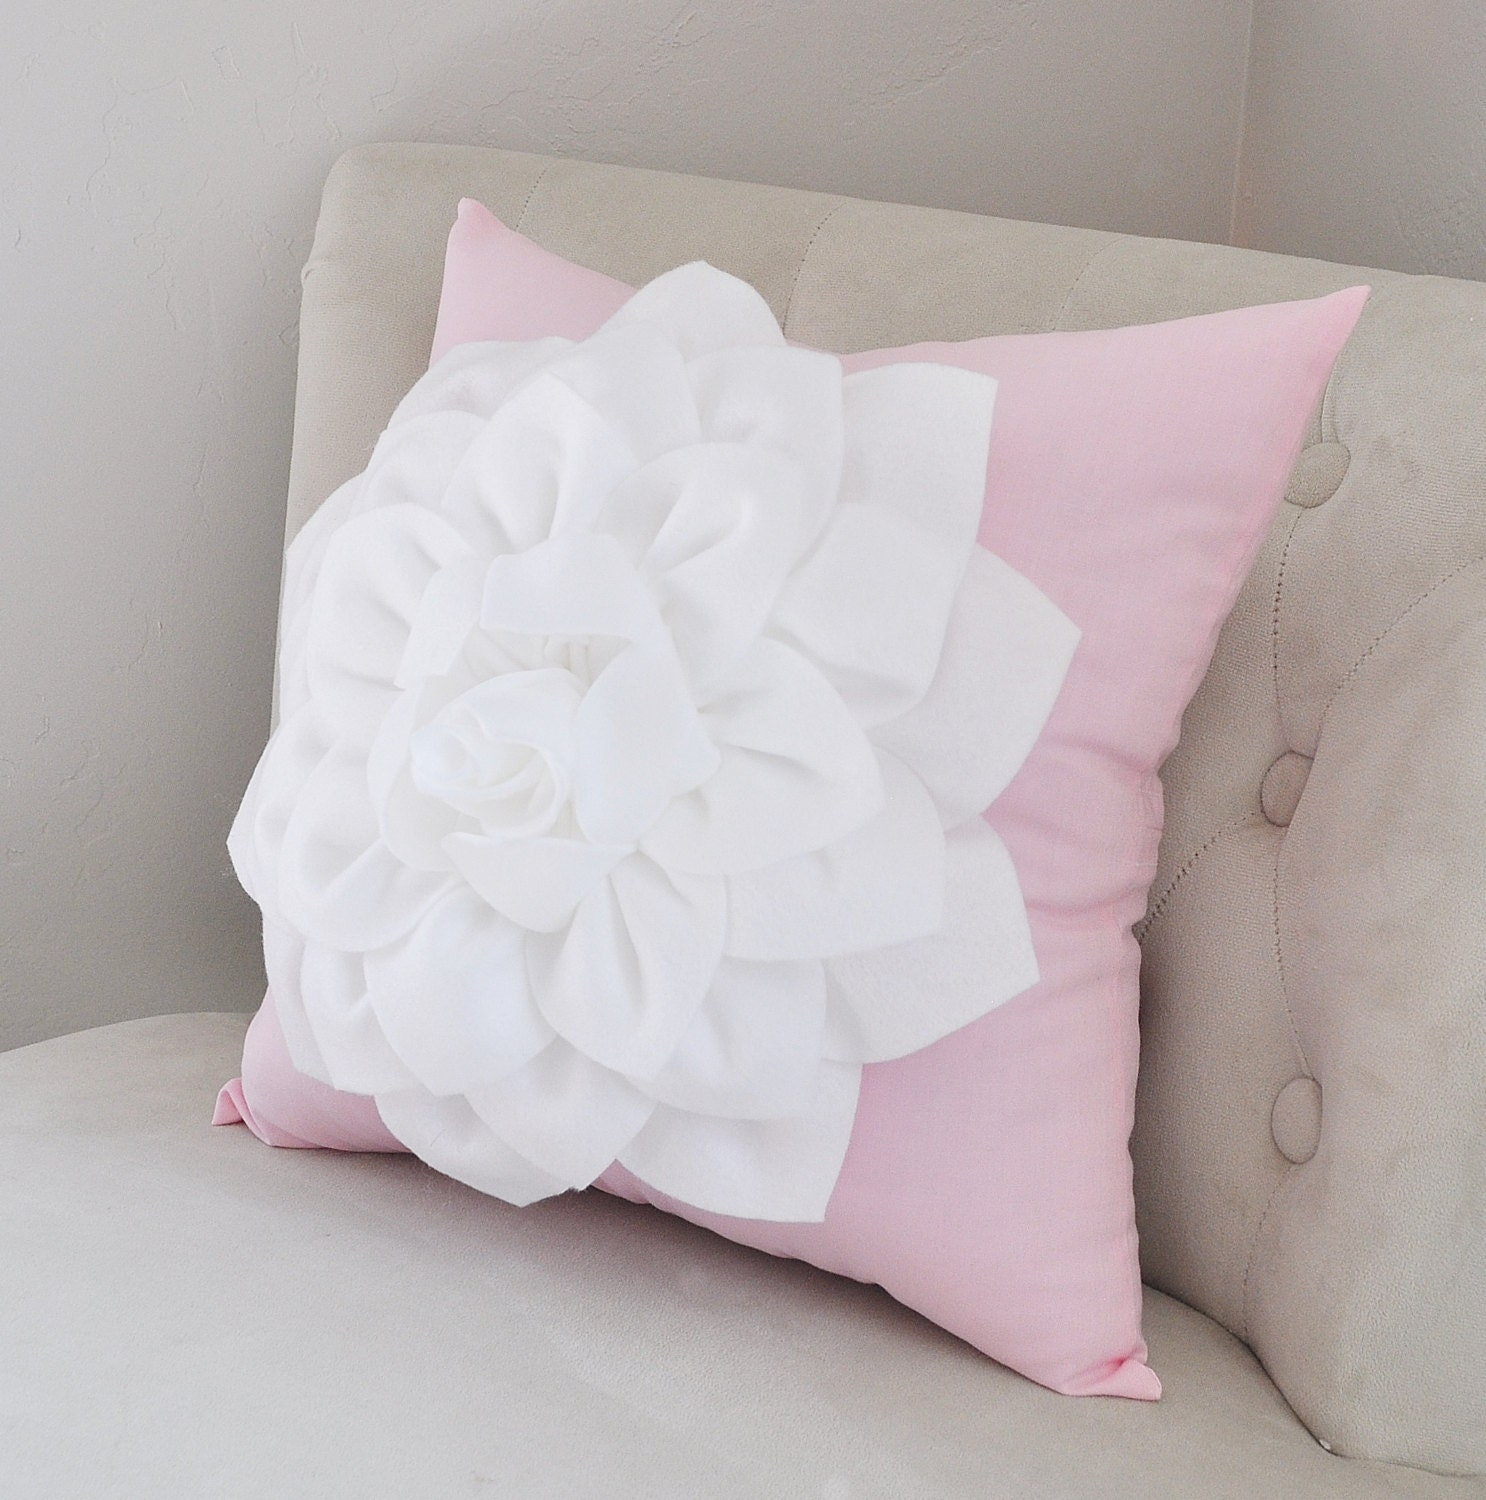 set victorian p blush comforter geo throw square pillows pink peri pillow tufted from pale chenille cut rose mini home